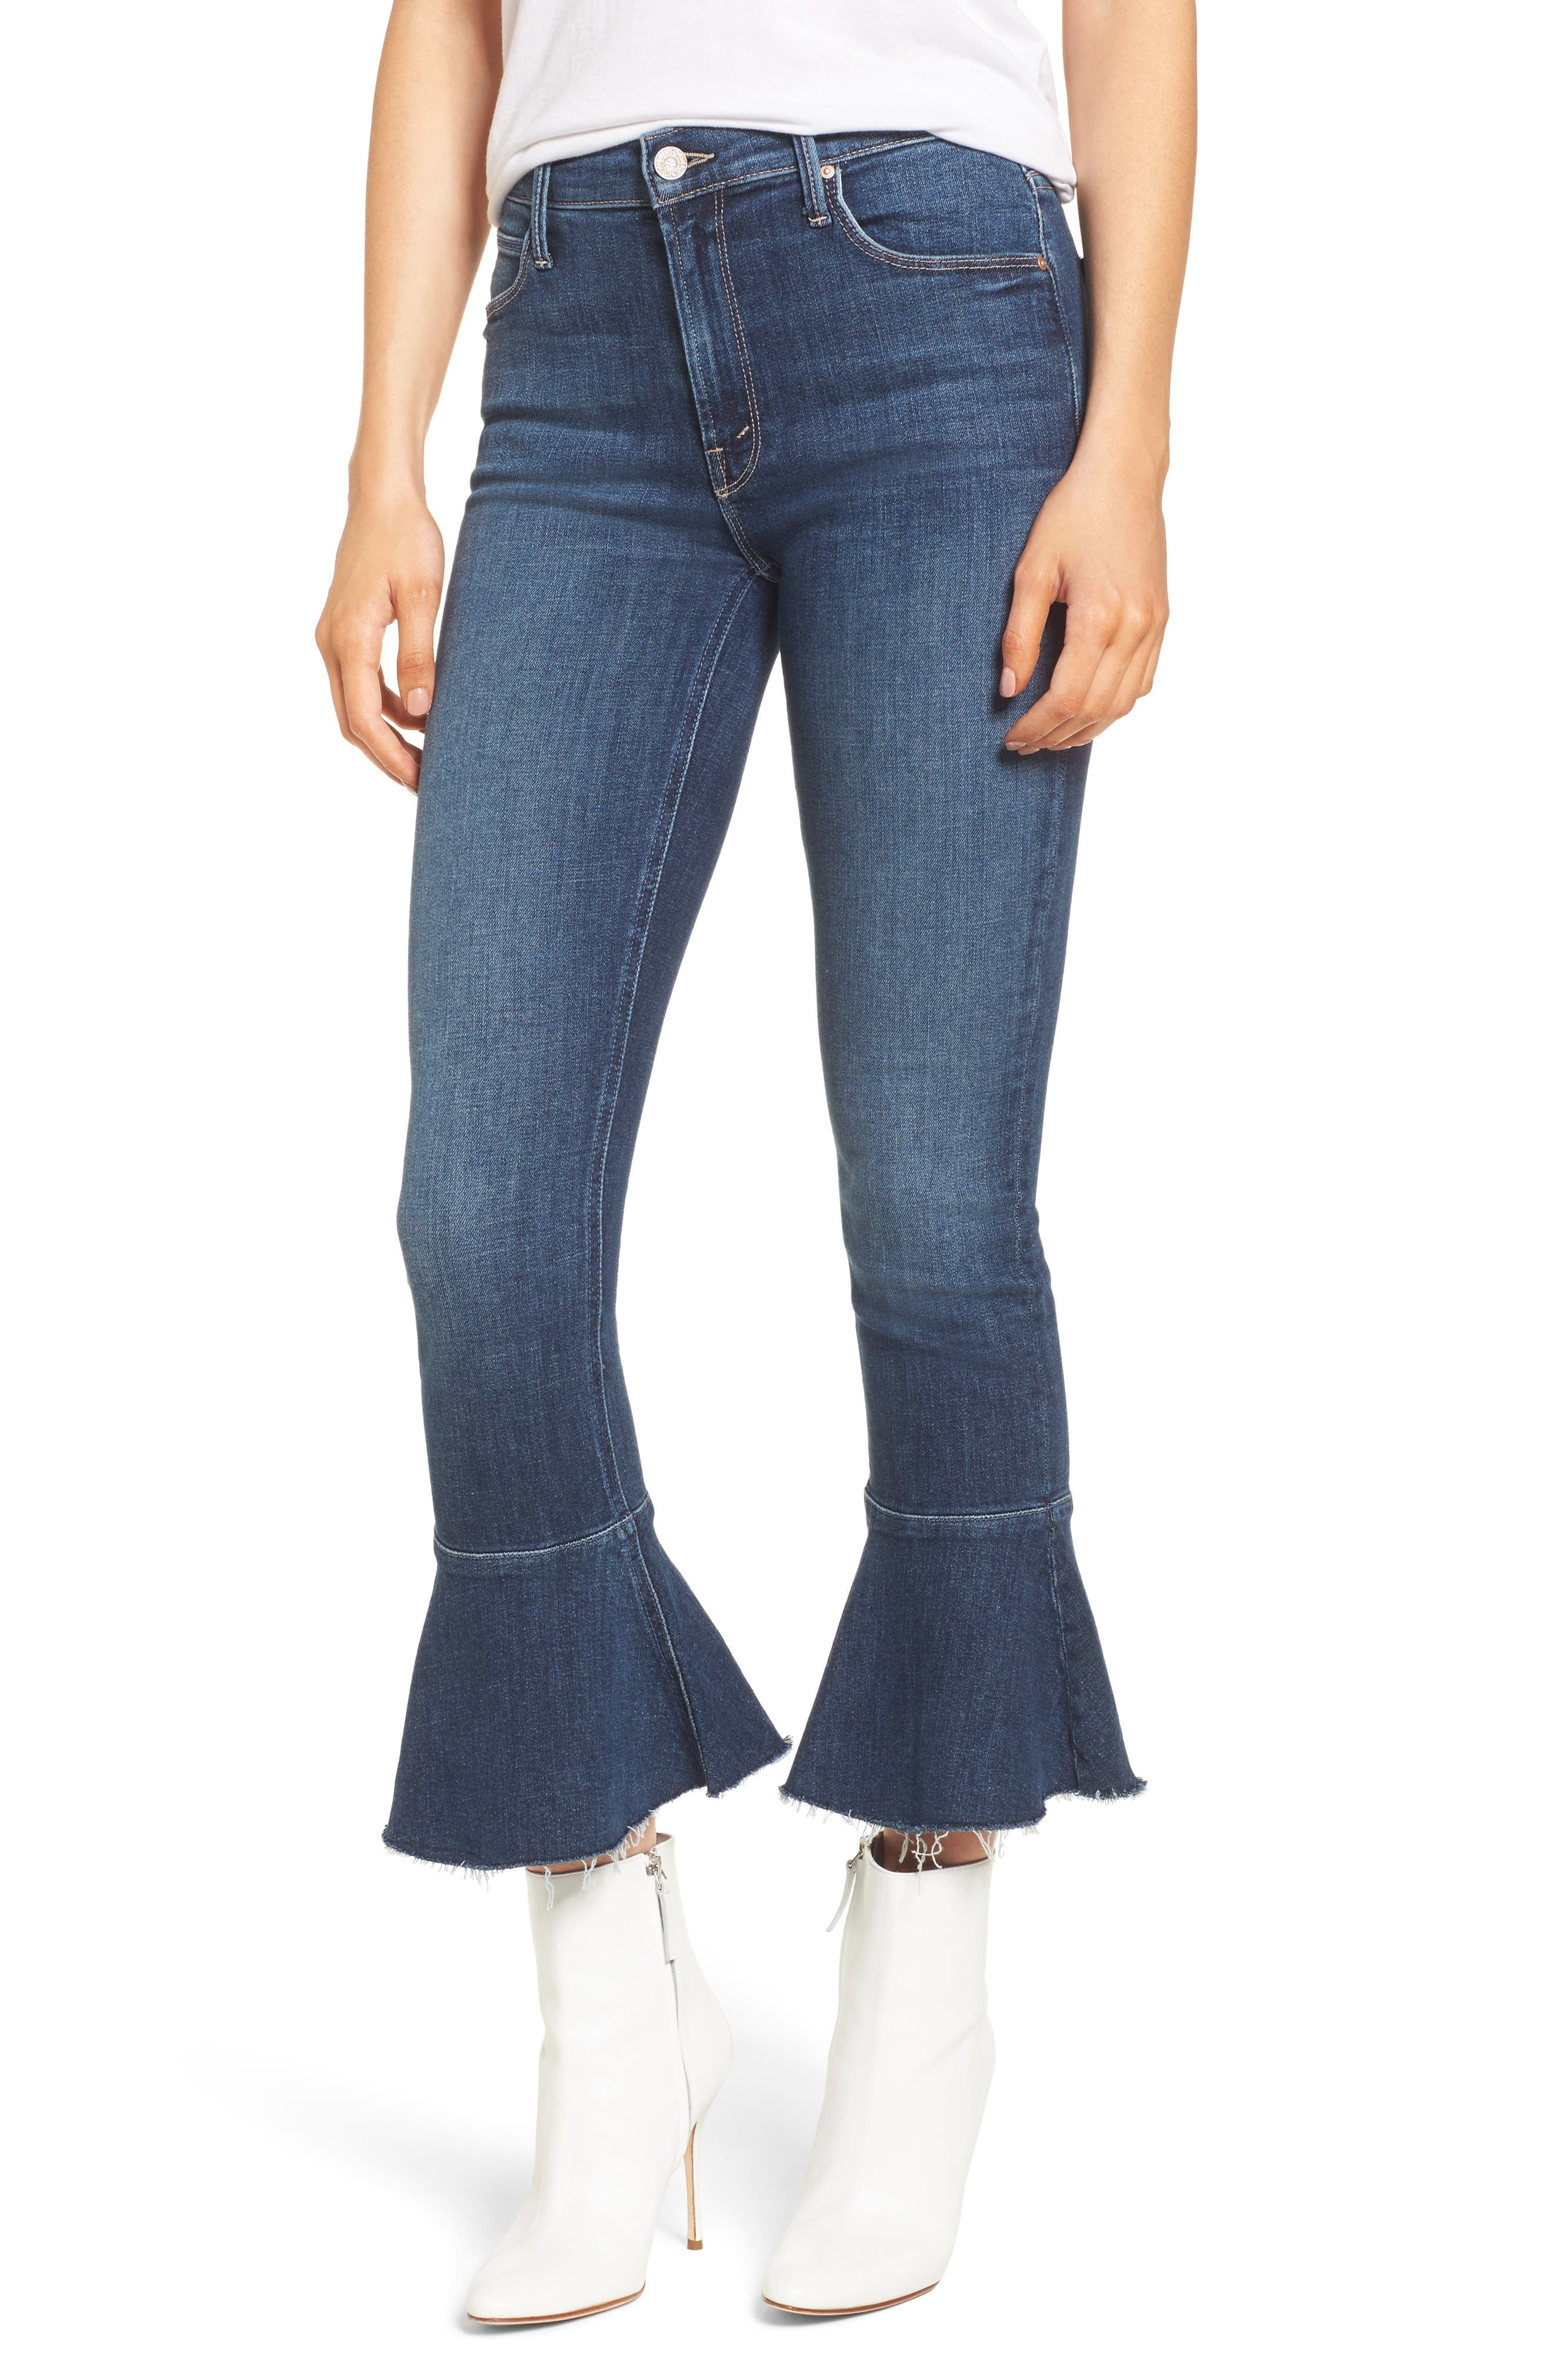 Main Image - MOTHER The Cha Cha Fray Flare Crop Jeans (Girl Crush)